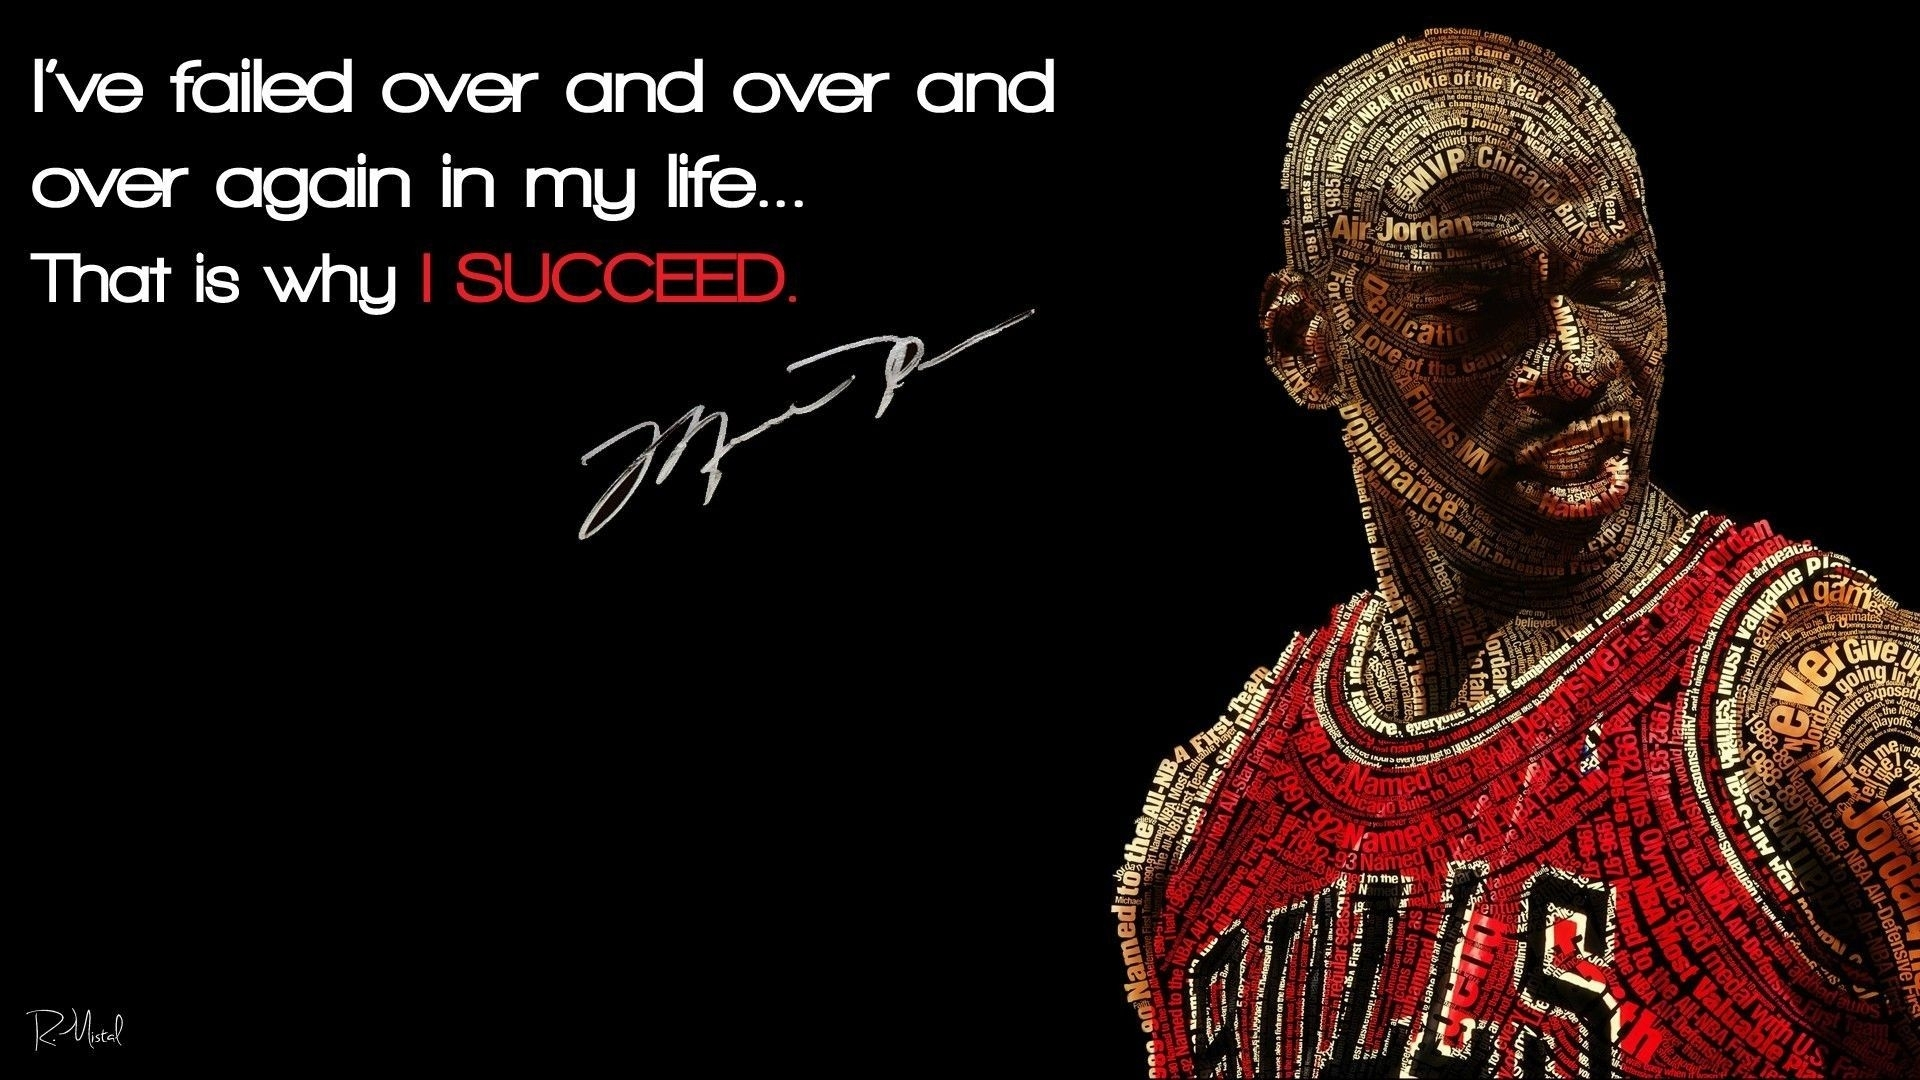 michael jordan quote hd wallpapers free download | pixelstalk